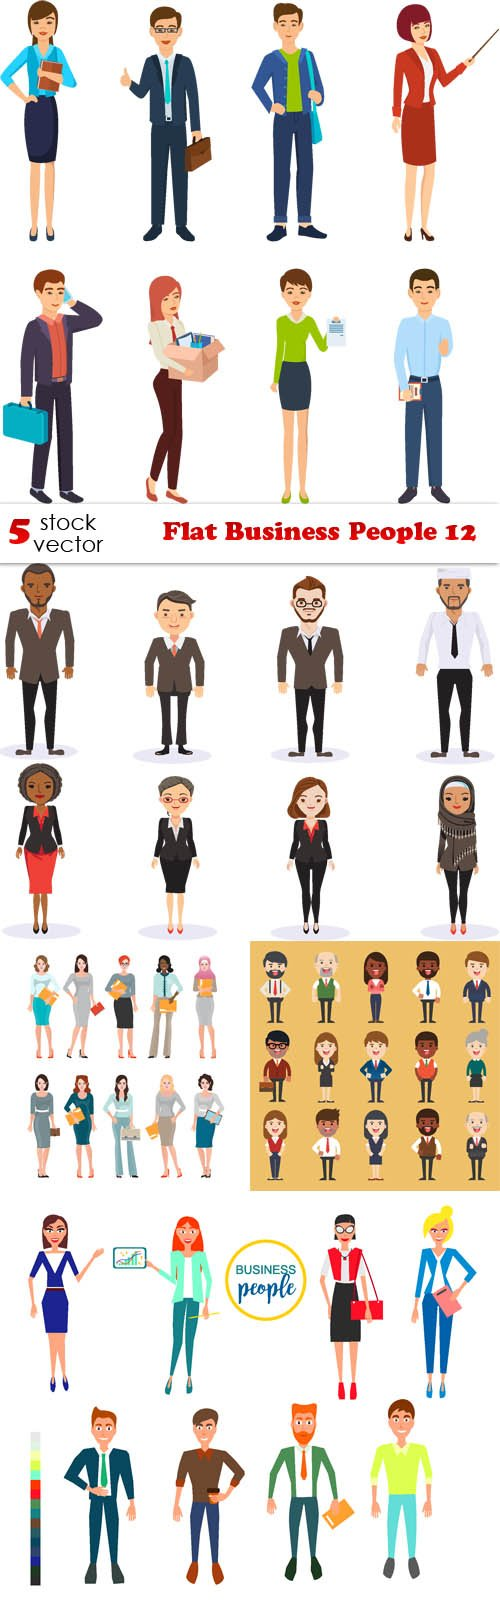 Vectors - Flat Business People 12